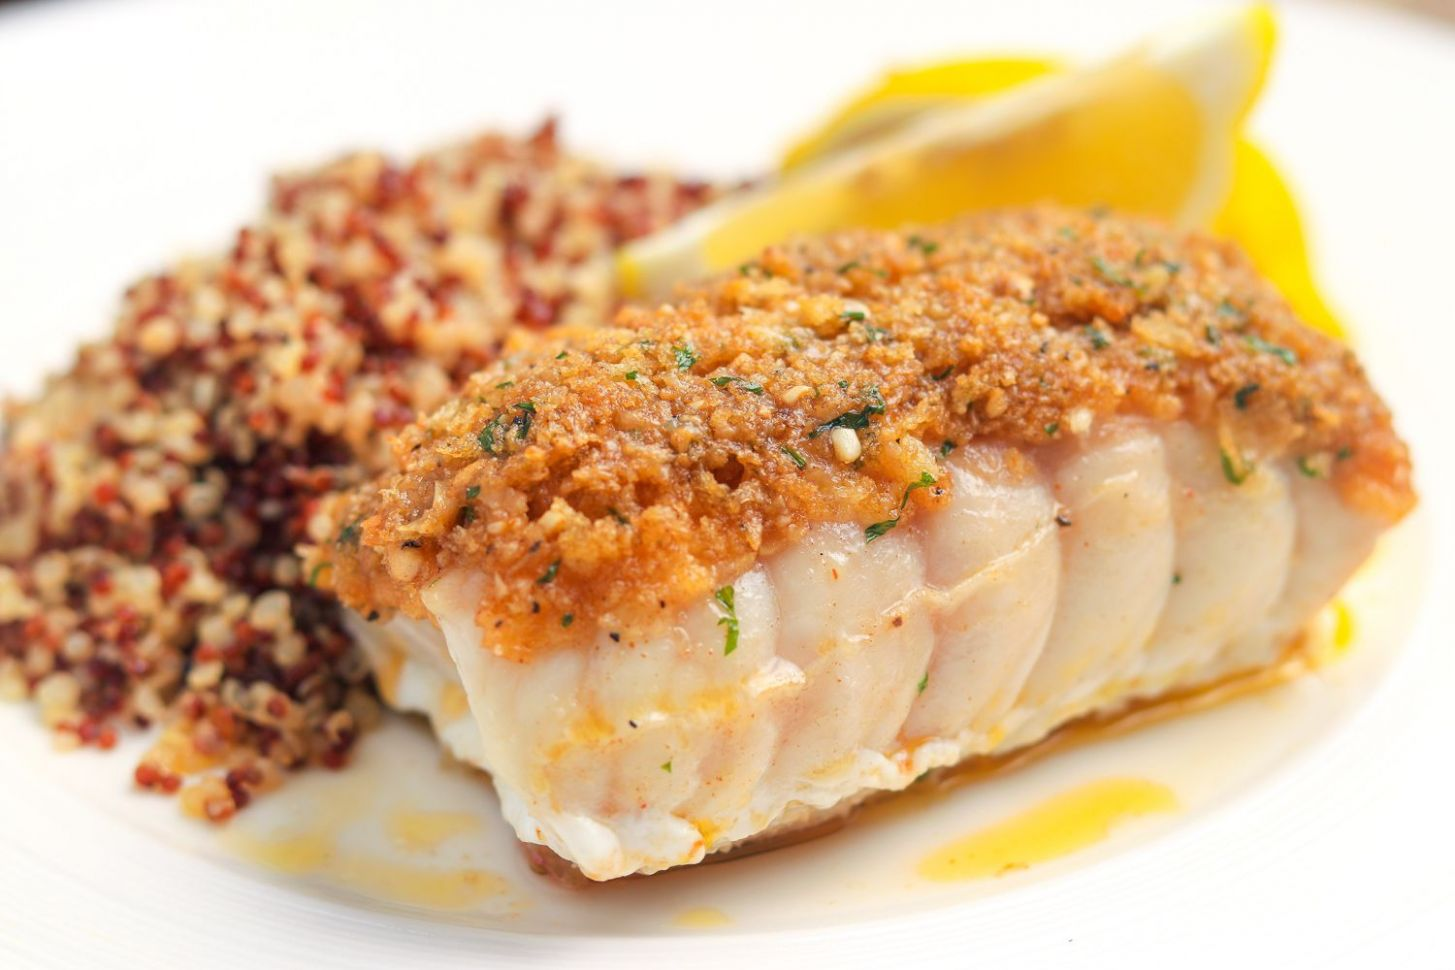 Baked Red Snapper With Garlic and Herbs Recipe - Recipes Red Fish